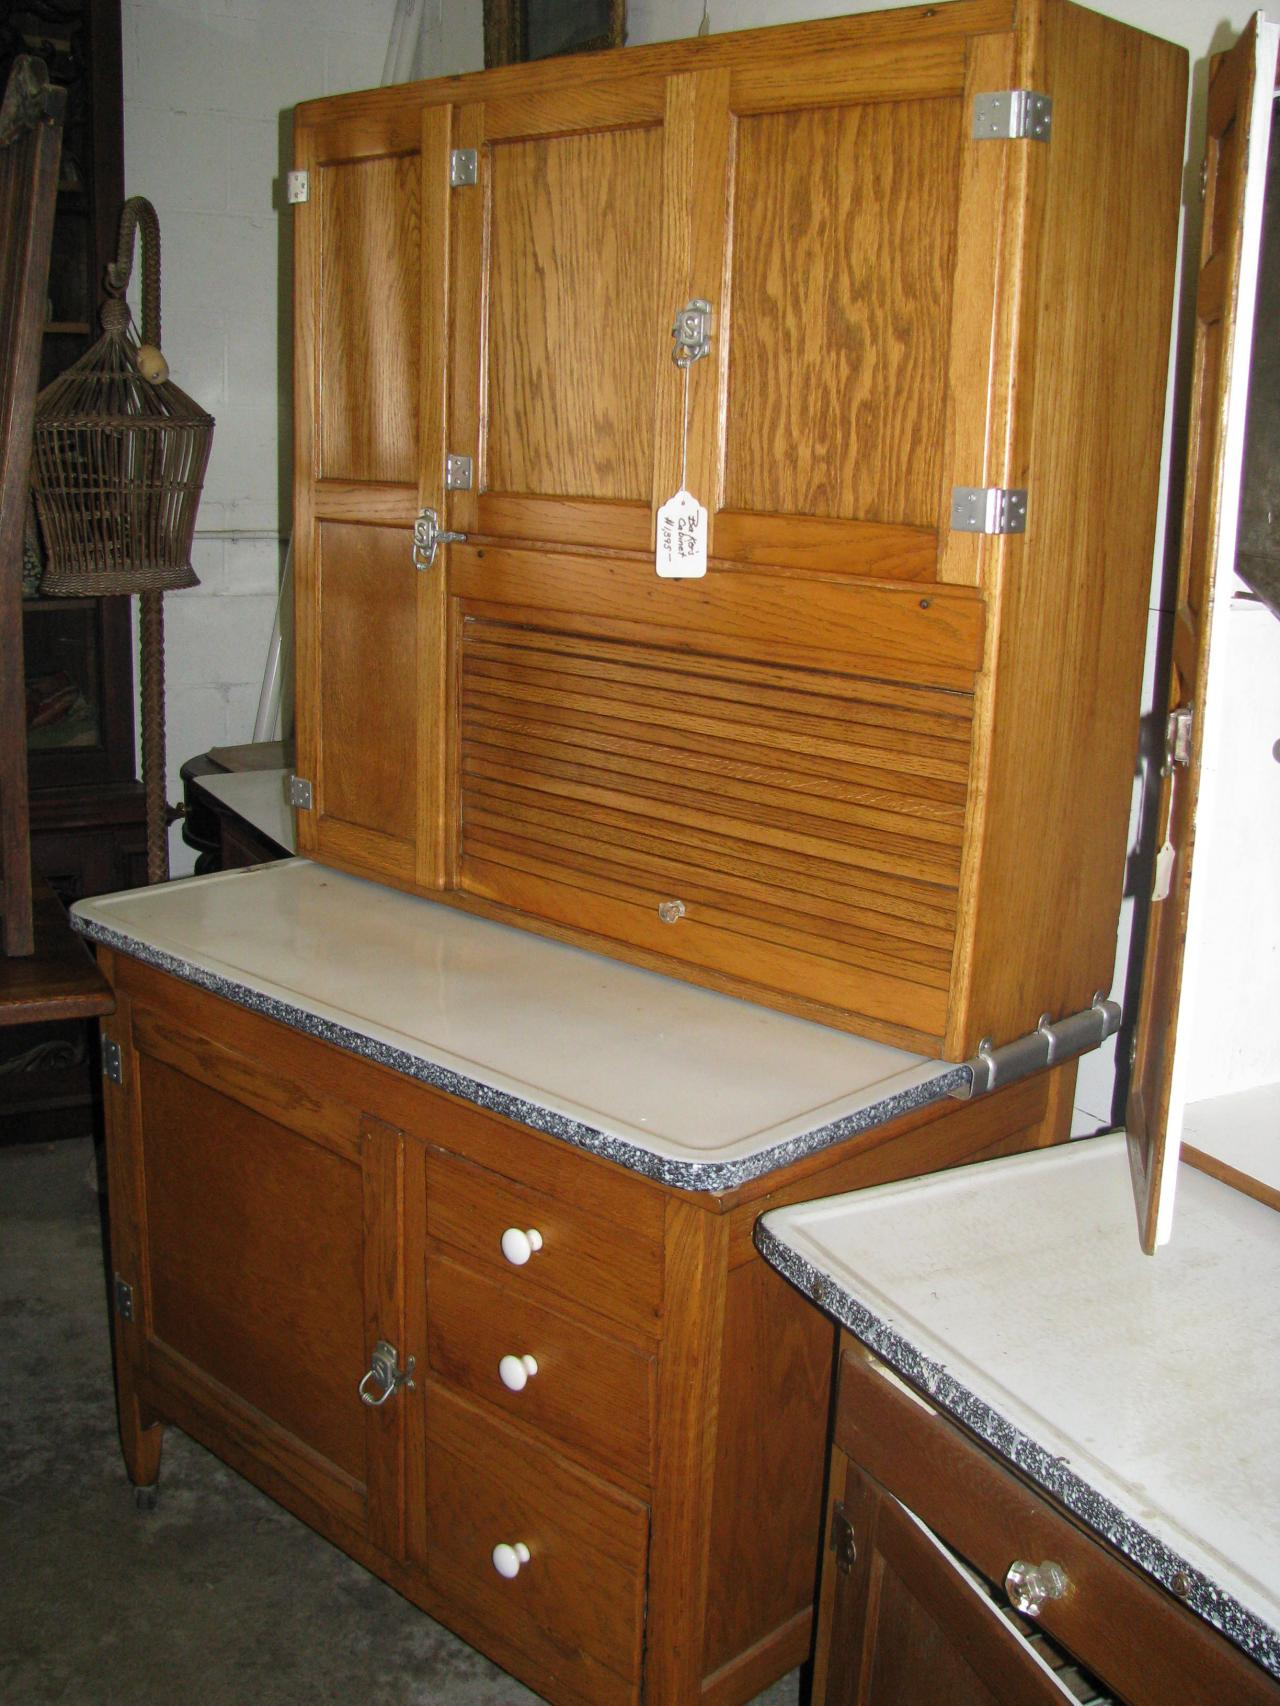 ... Sellers Oak Bakers Cabinet Circa 1916-1920; McDougall Bakers Kitchen ... - Z's Antiques & Restorations - Hoosier/Baker's Cabinets Including